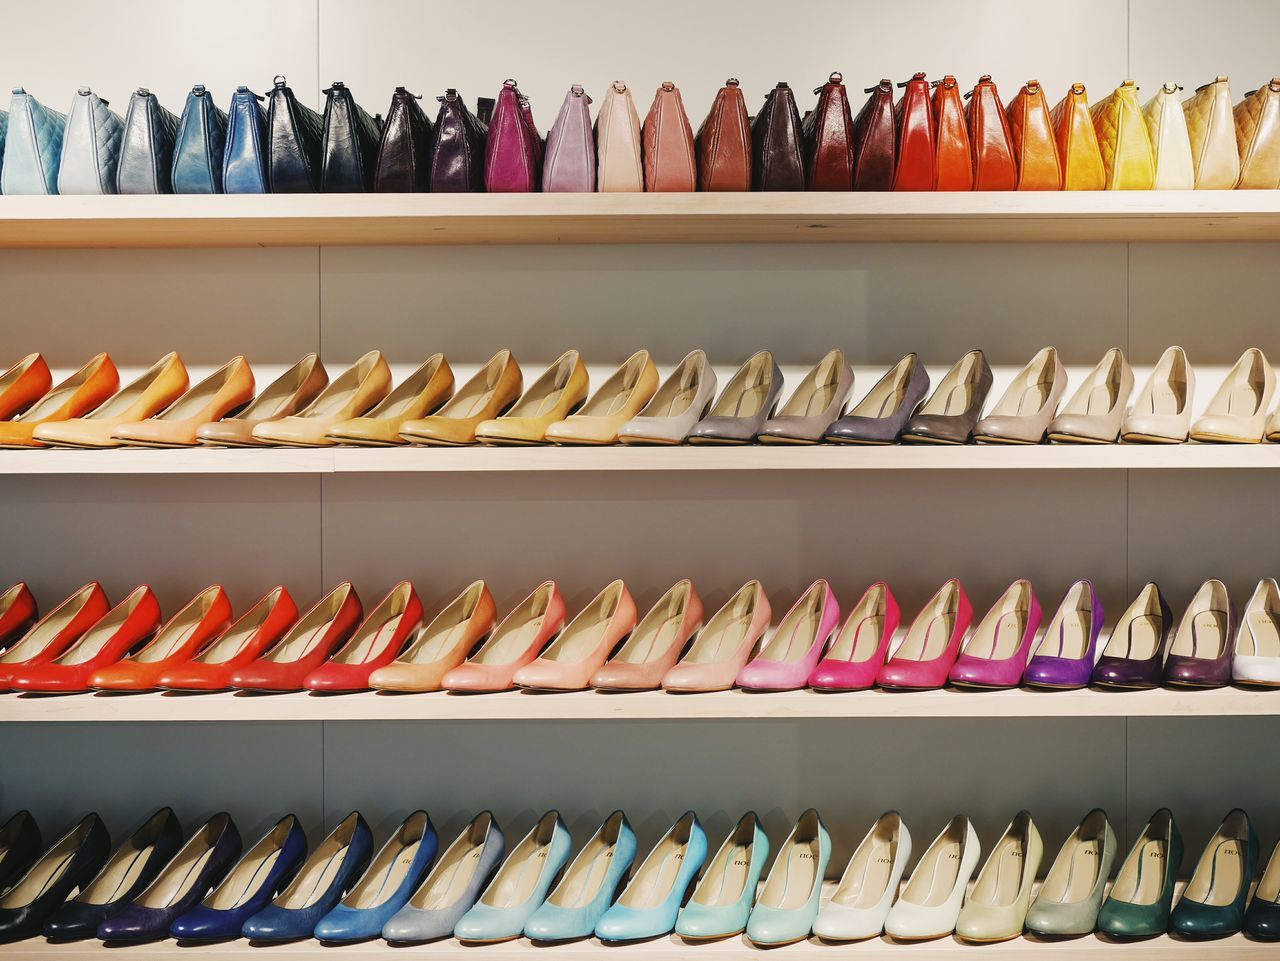 In A Row Shelf No People Large Group Of Objects Indoors  Day Close-up Shoes Bags Shopping Shoe Addiction